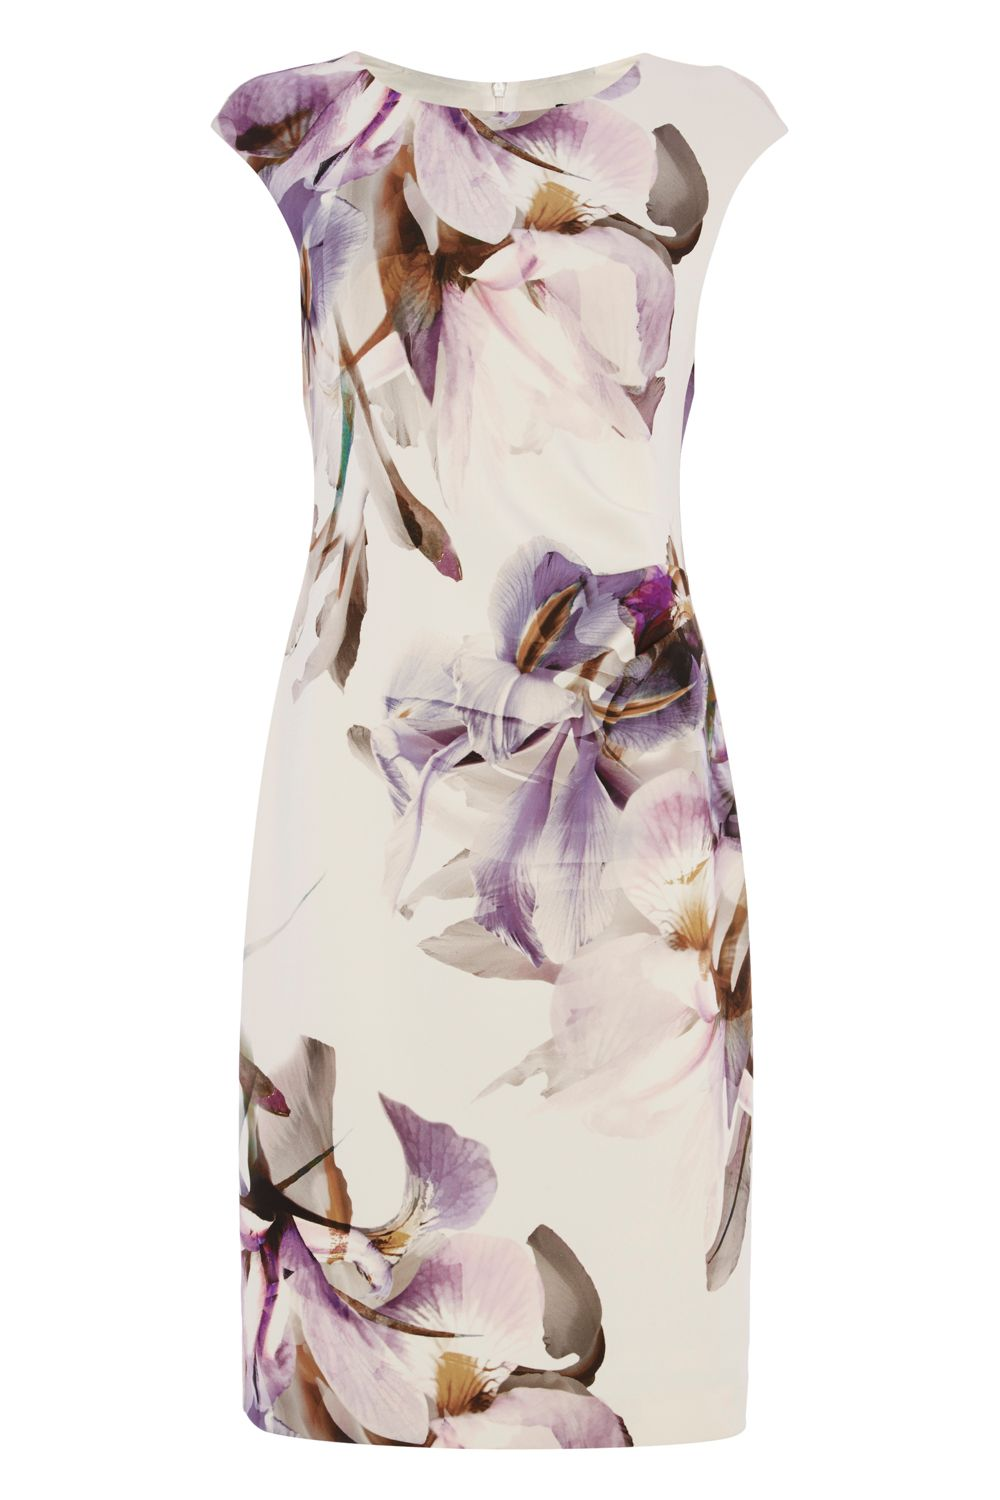 Roman Originals Scuba Print Dress, White